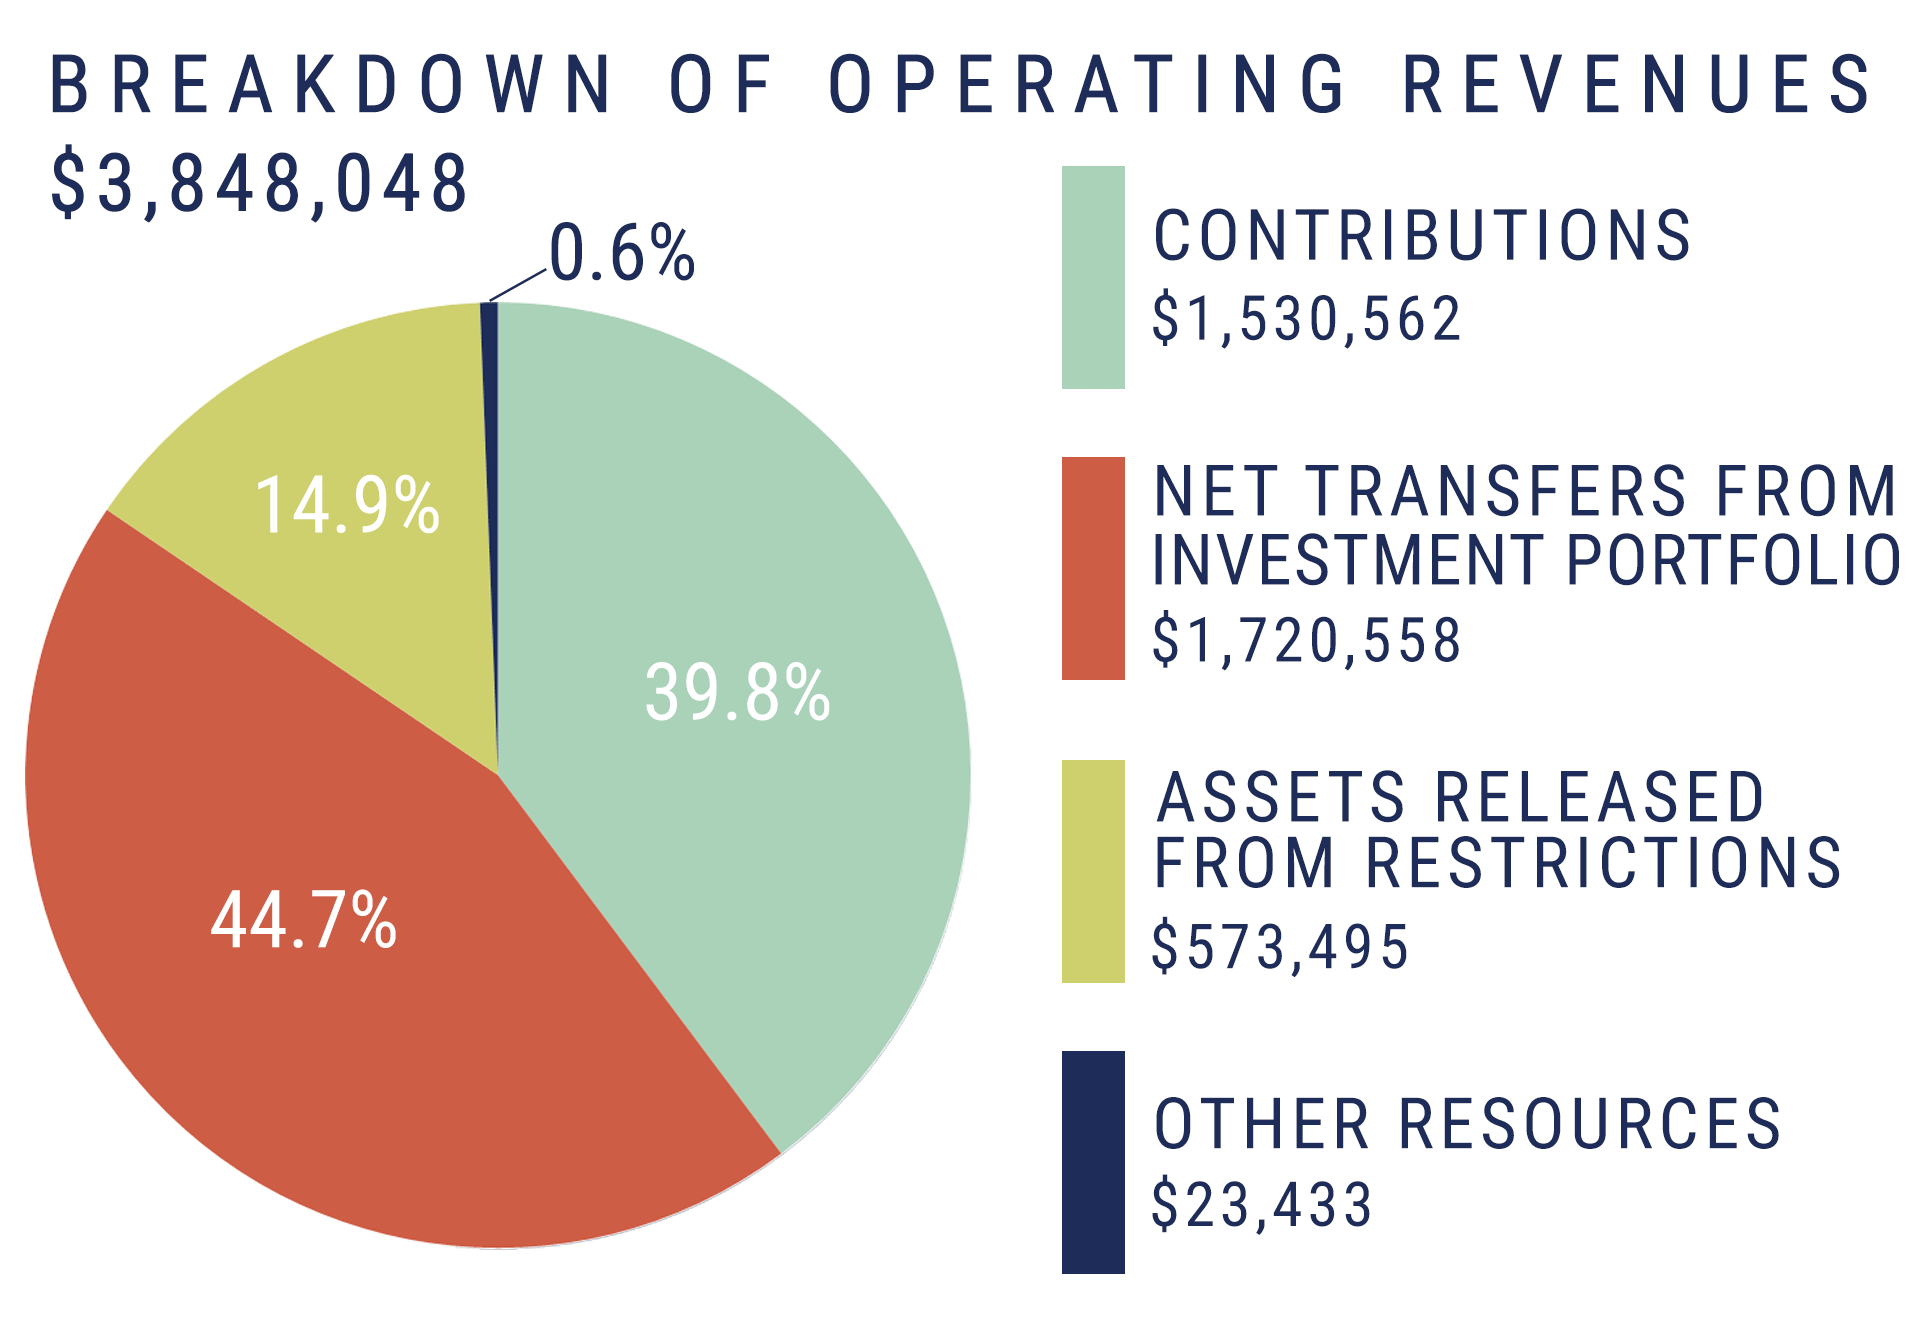 pie-chart_breakdown-of-operating-revenues2019_c